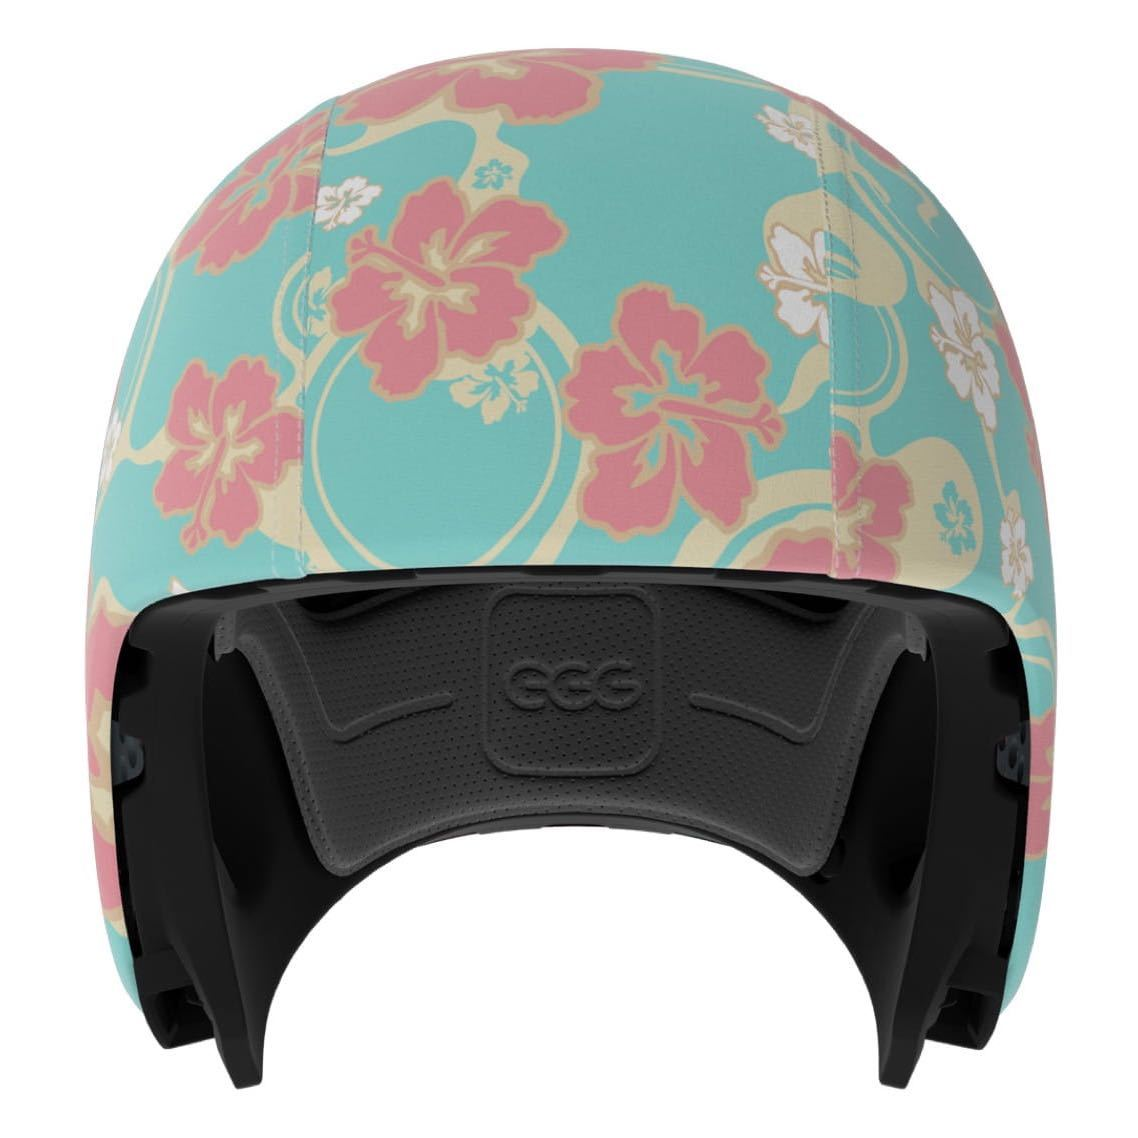 EGG Helmet - Skin - Pua - Helmet Skins and Add-ons - Bmini | Design for Kids